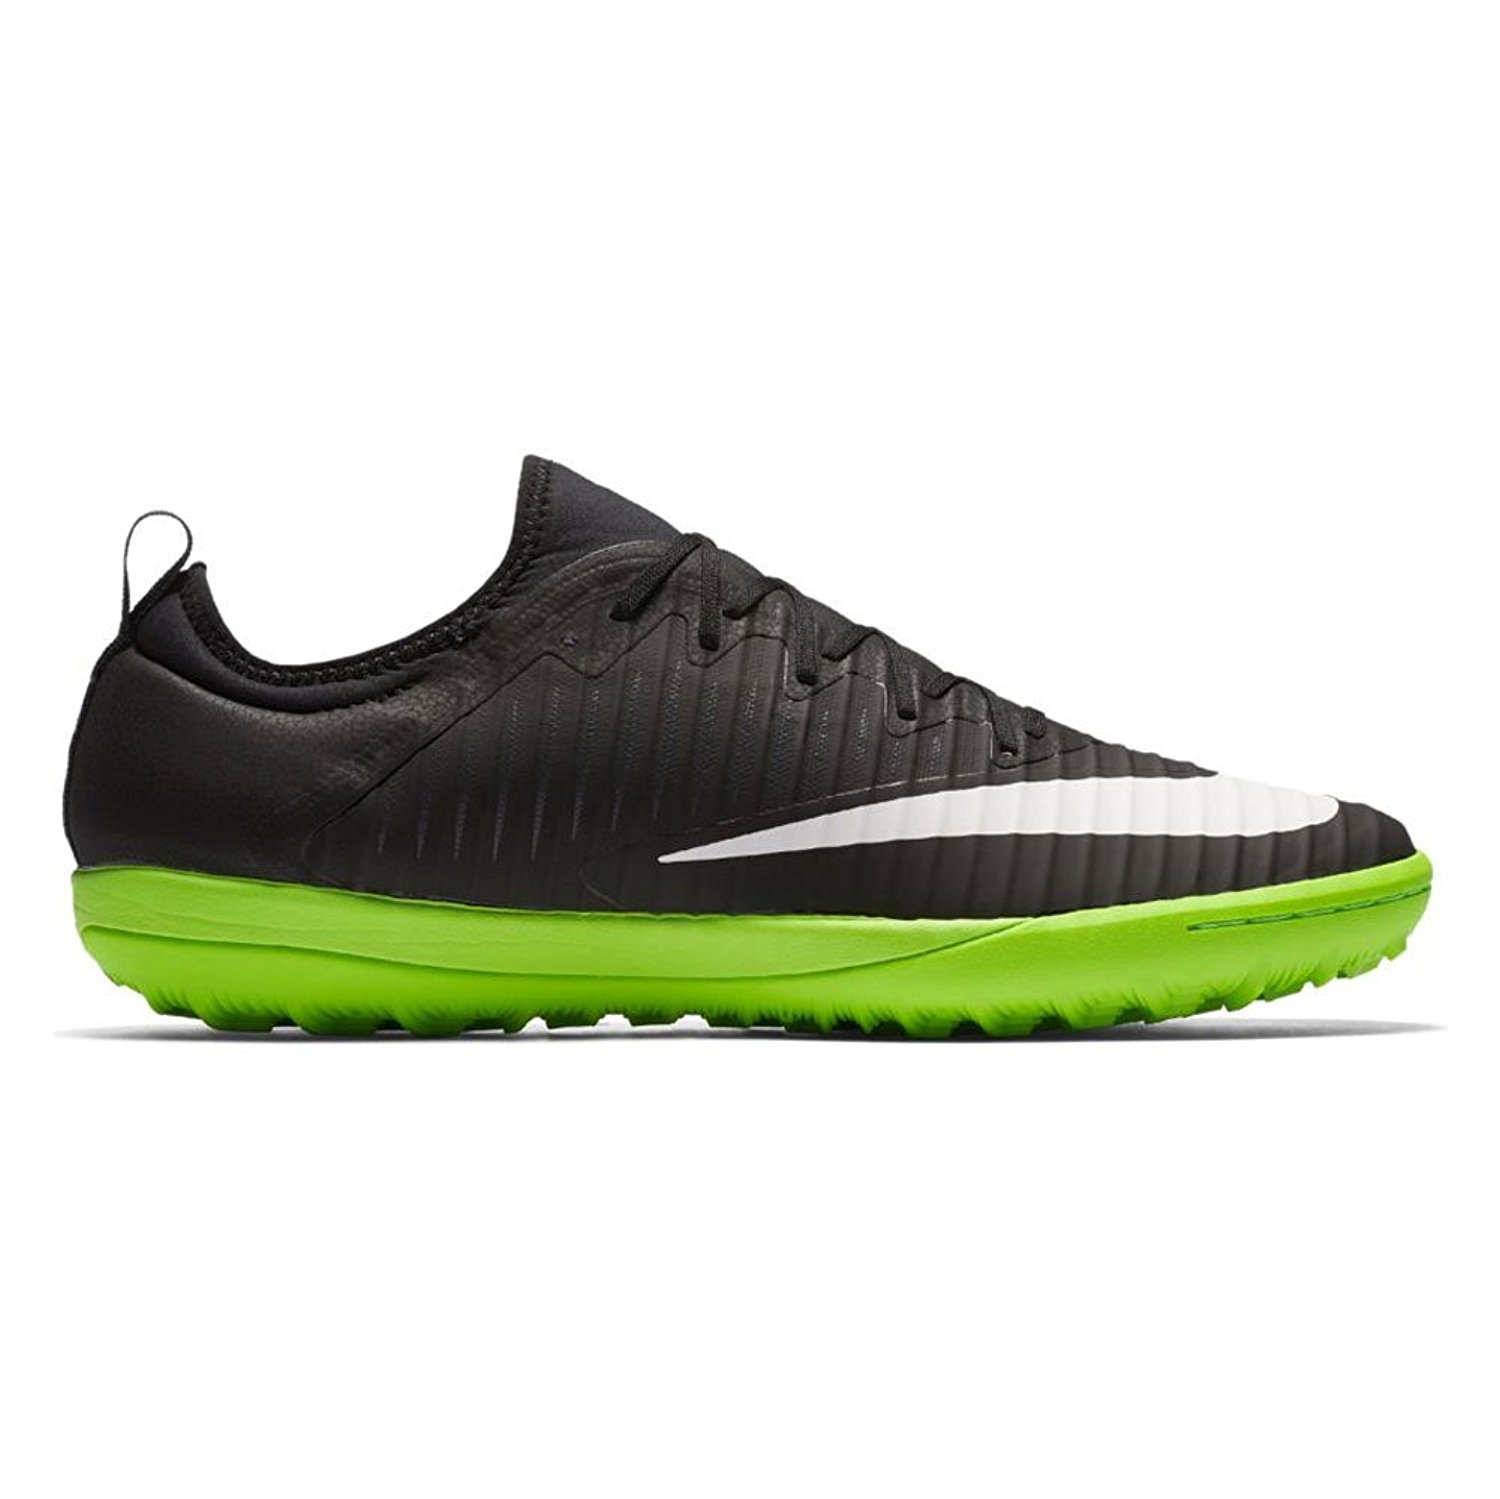 7a1c7fa4d Get Quotations · Nike Men's MercurialX Finale TF Turf Soccer Shoe (Sz. 8.5)  Electric Green,